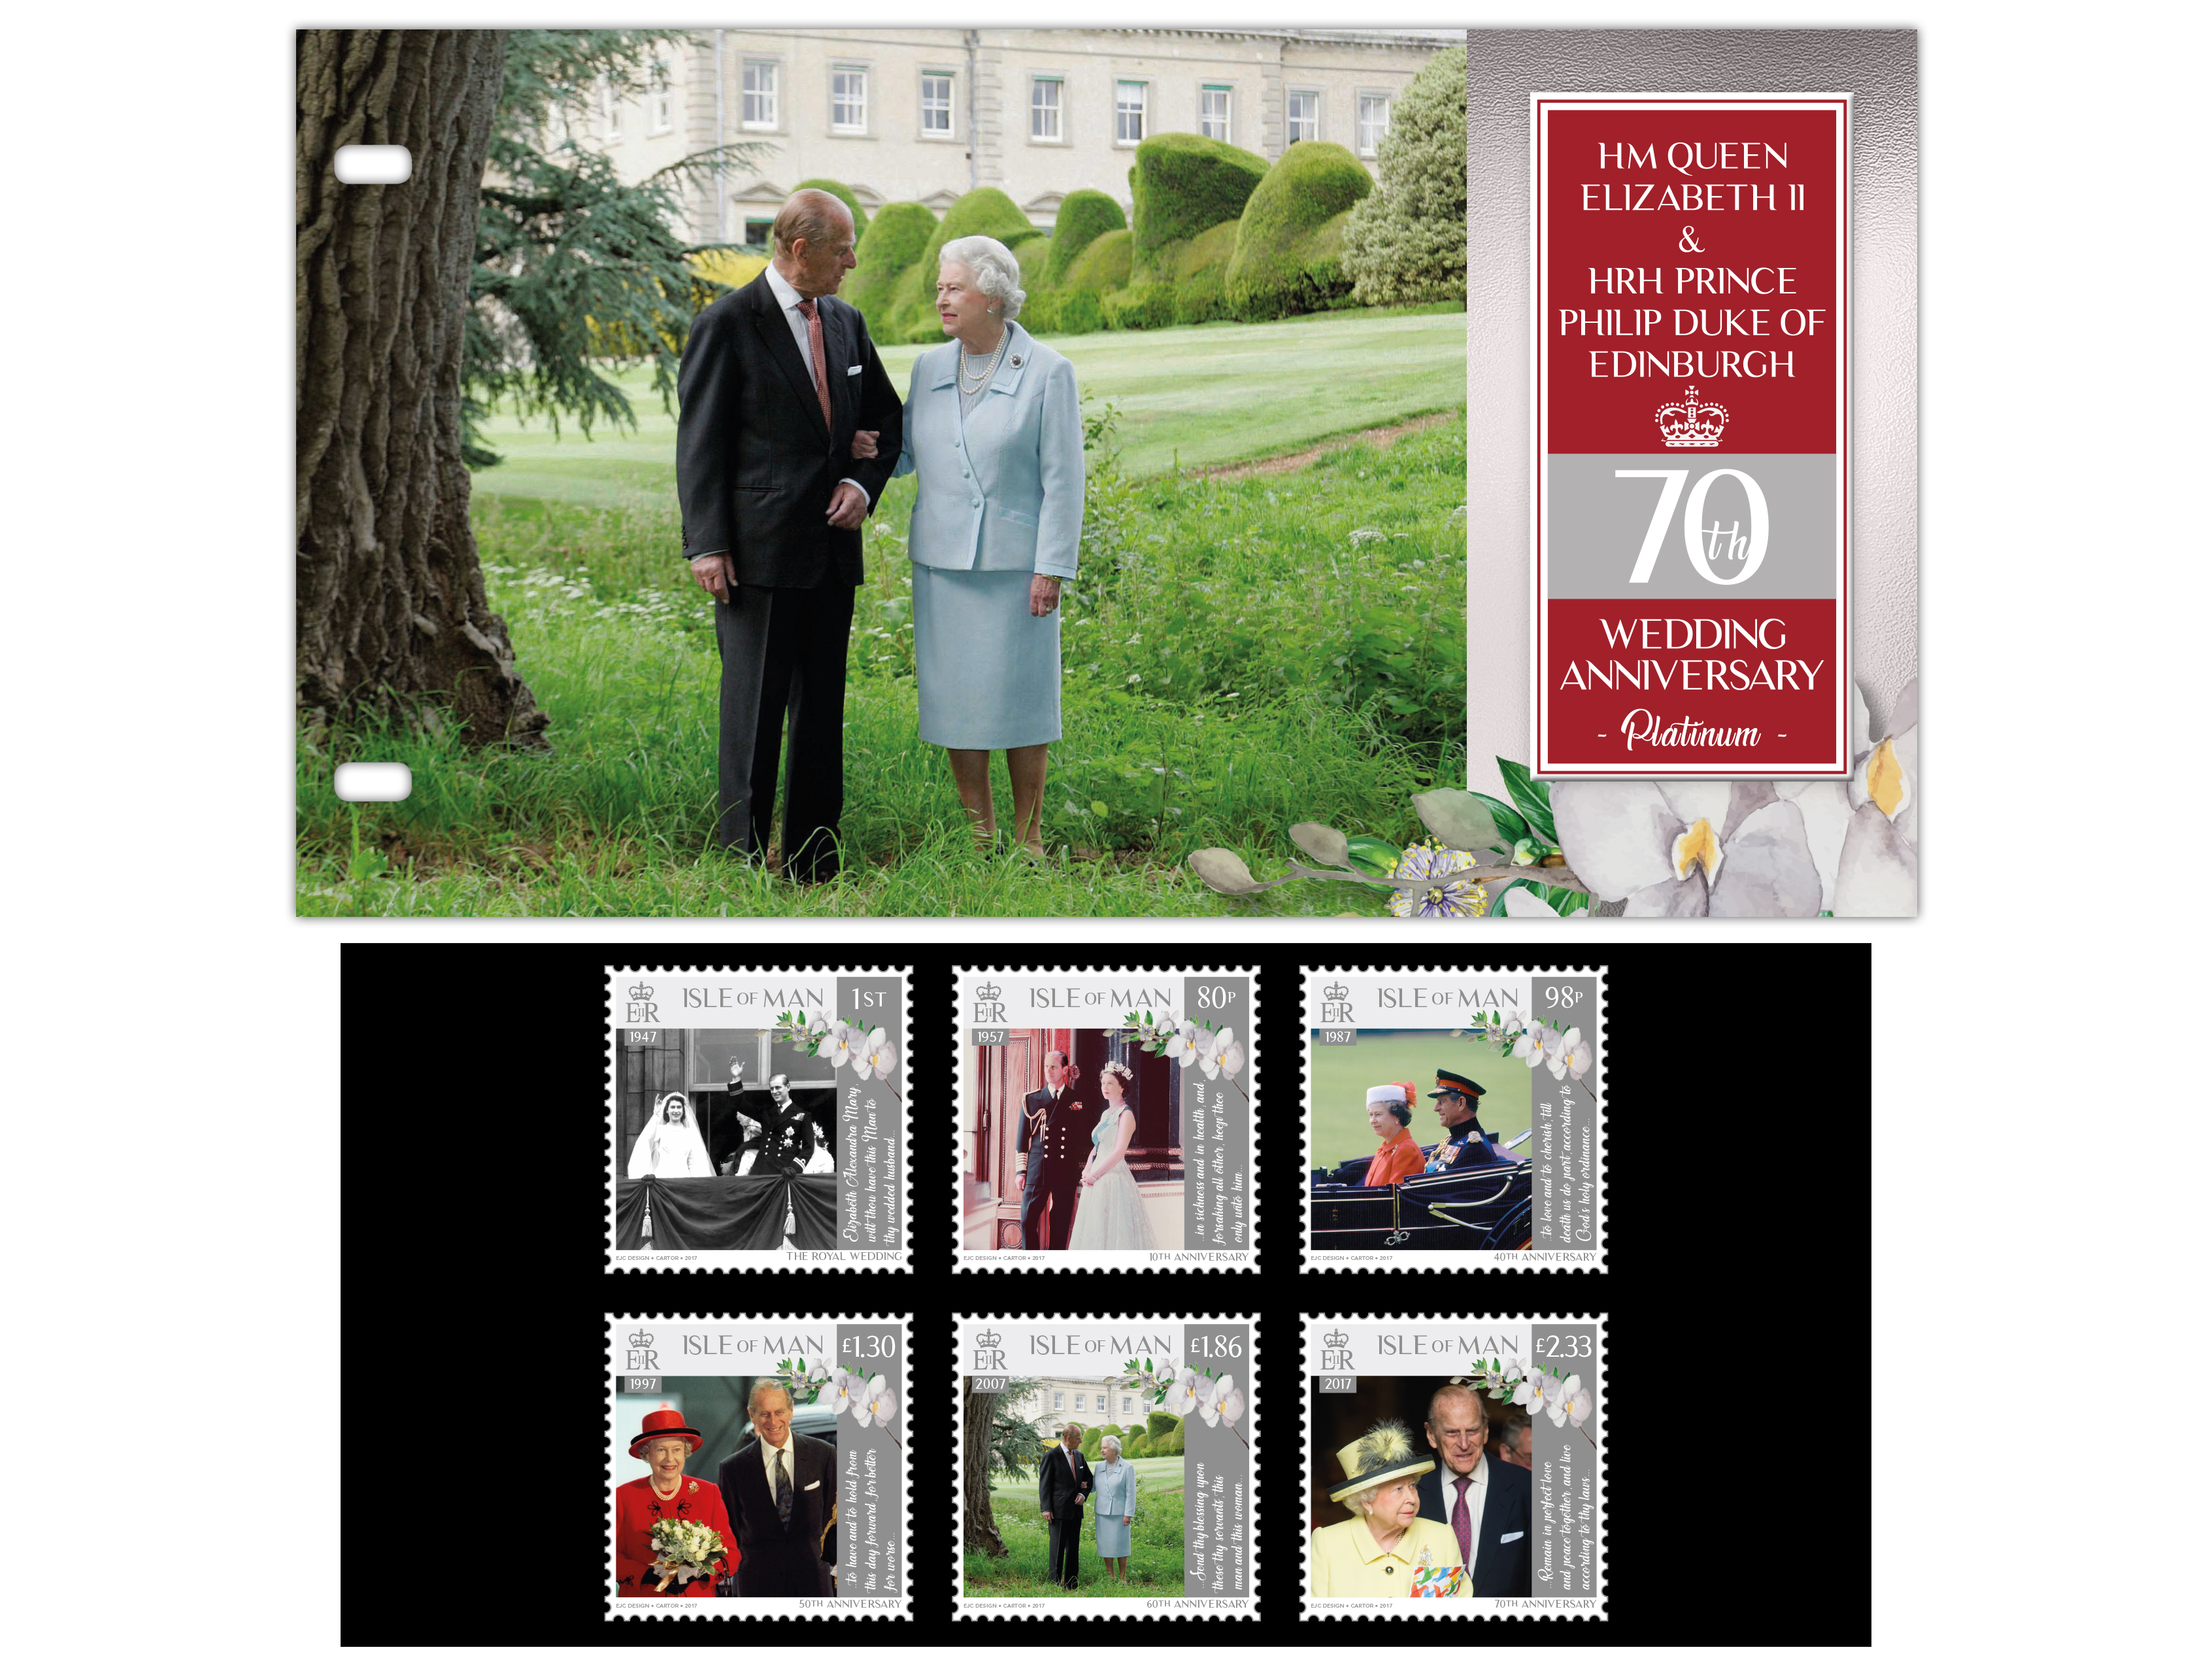 Isle Of Man Post Office Commemorates Hm Queen And Hrh Prince